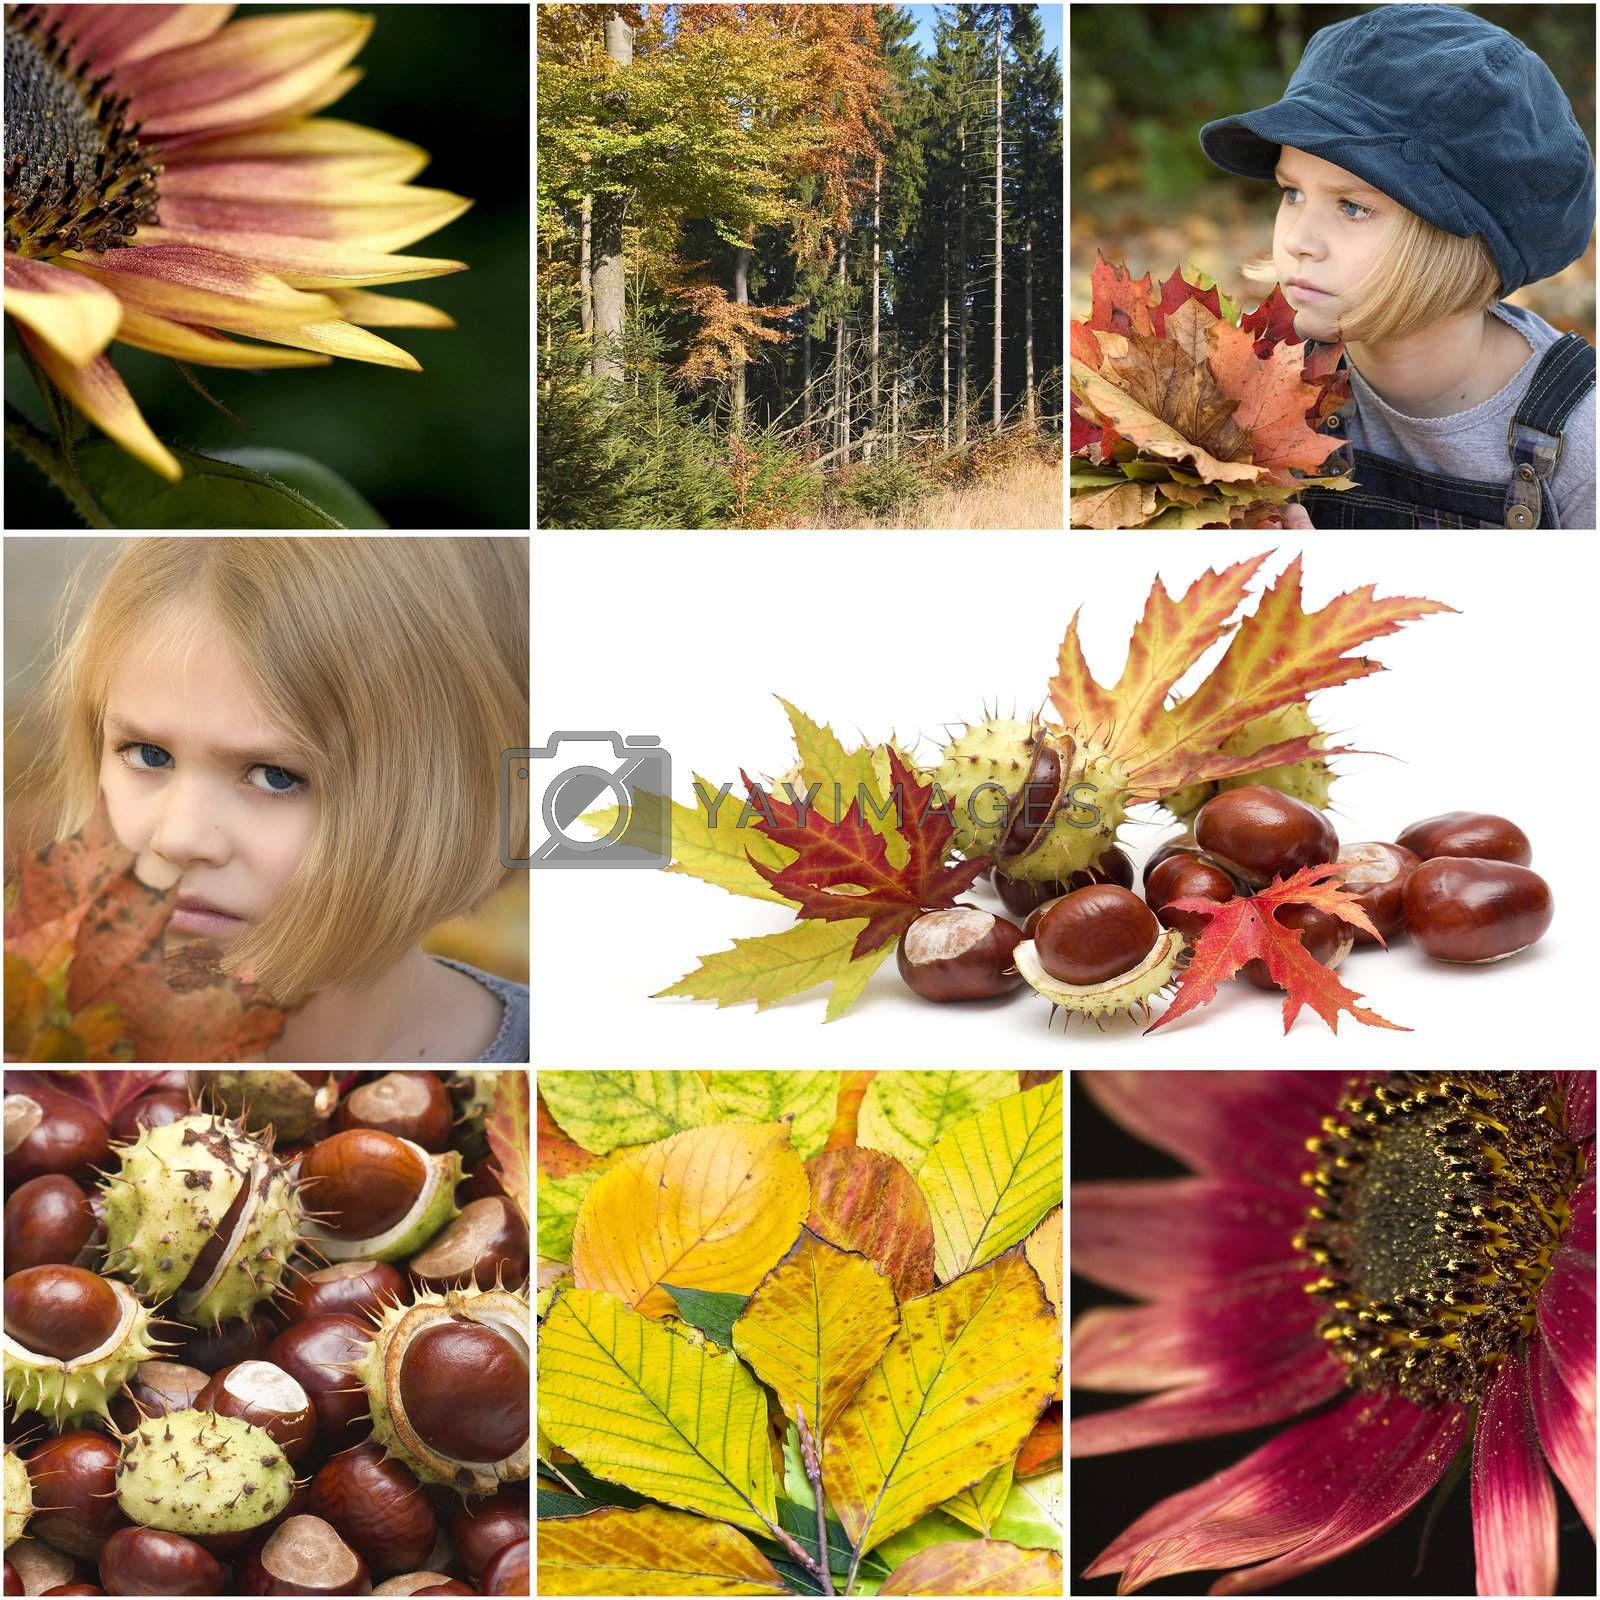 Autumn collage with different autumn pictures